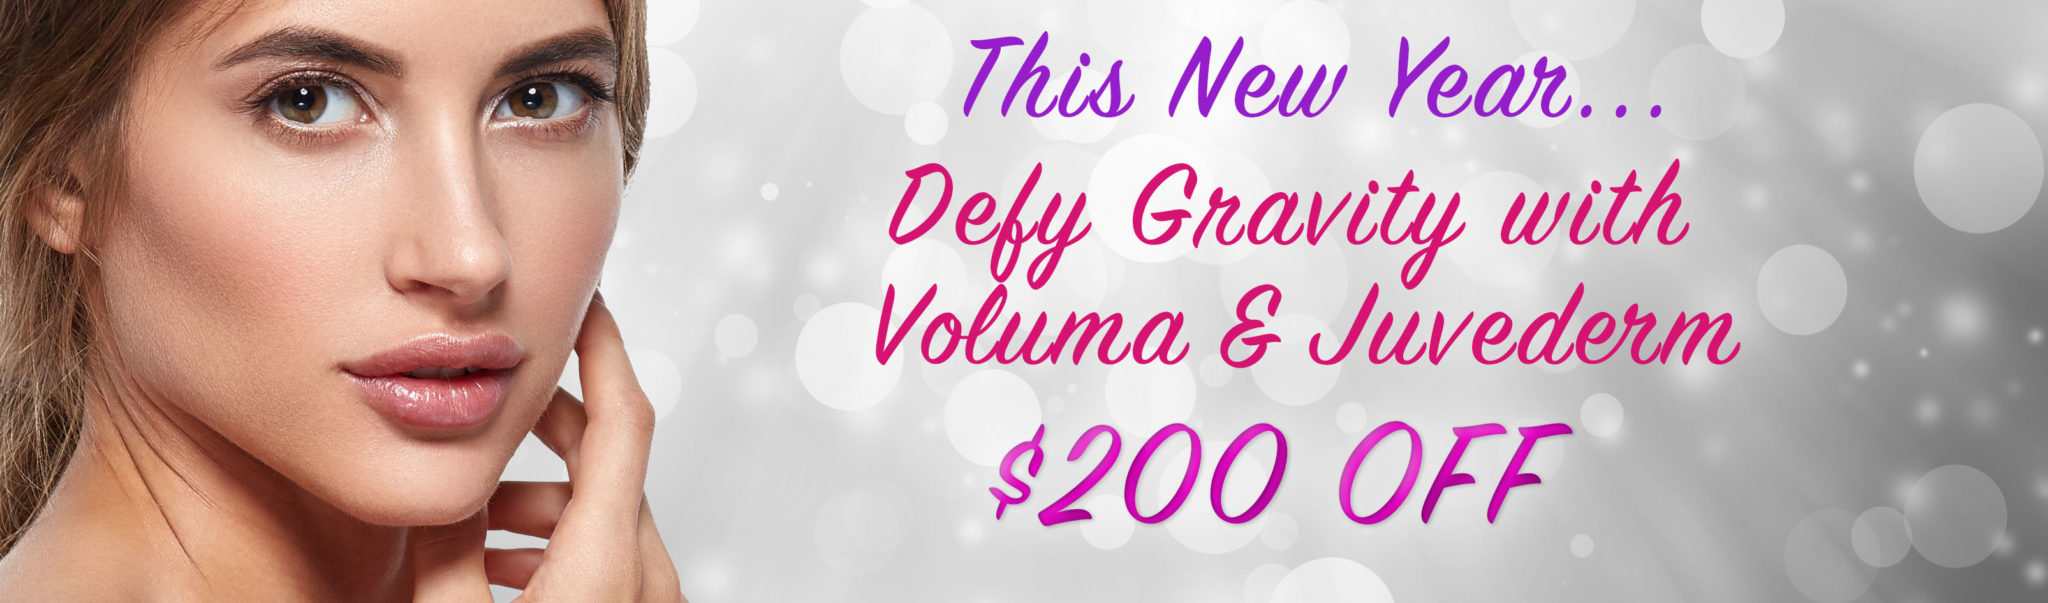 Defy gravity voluma and juvederm